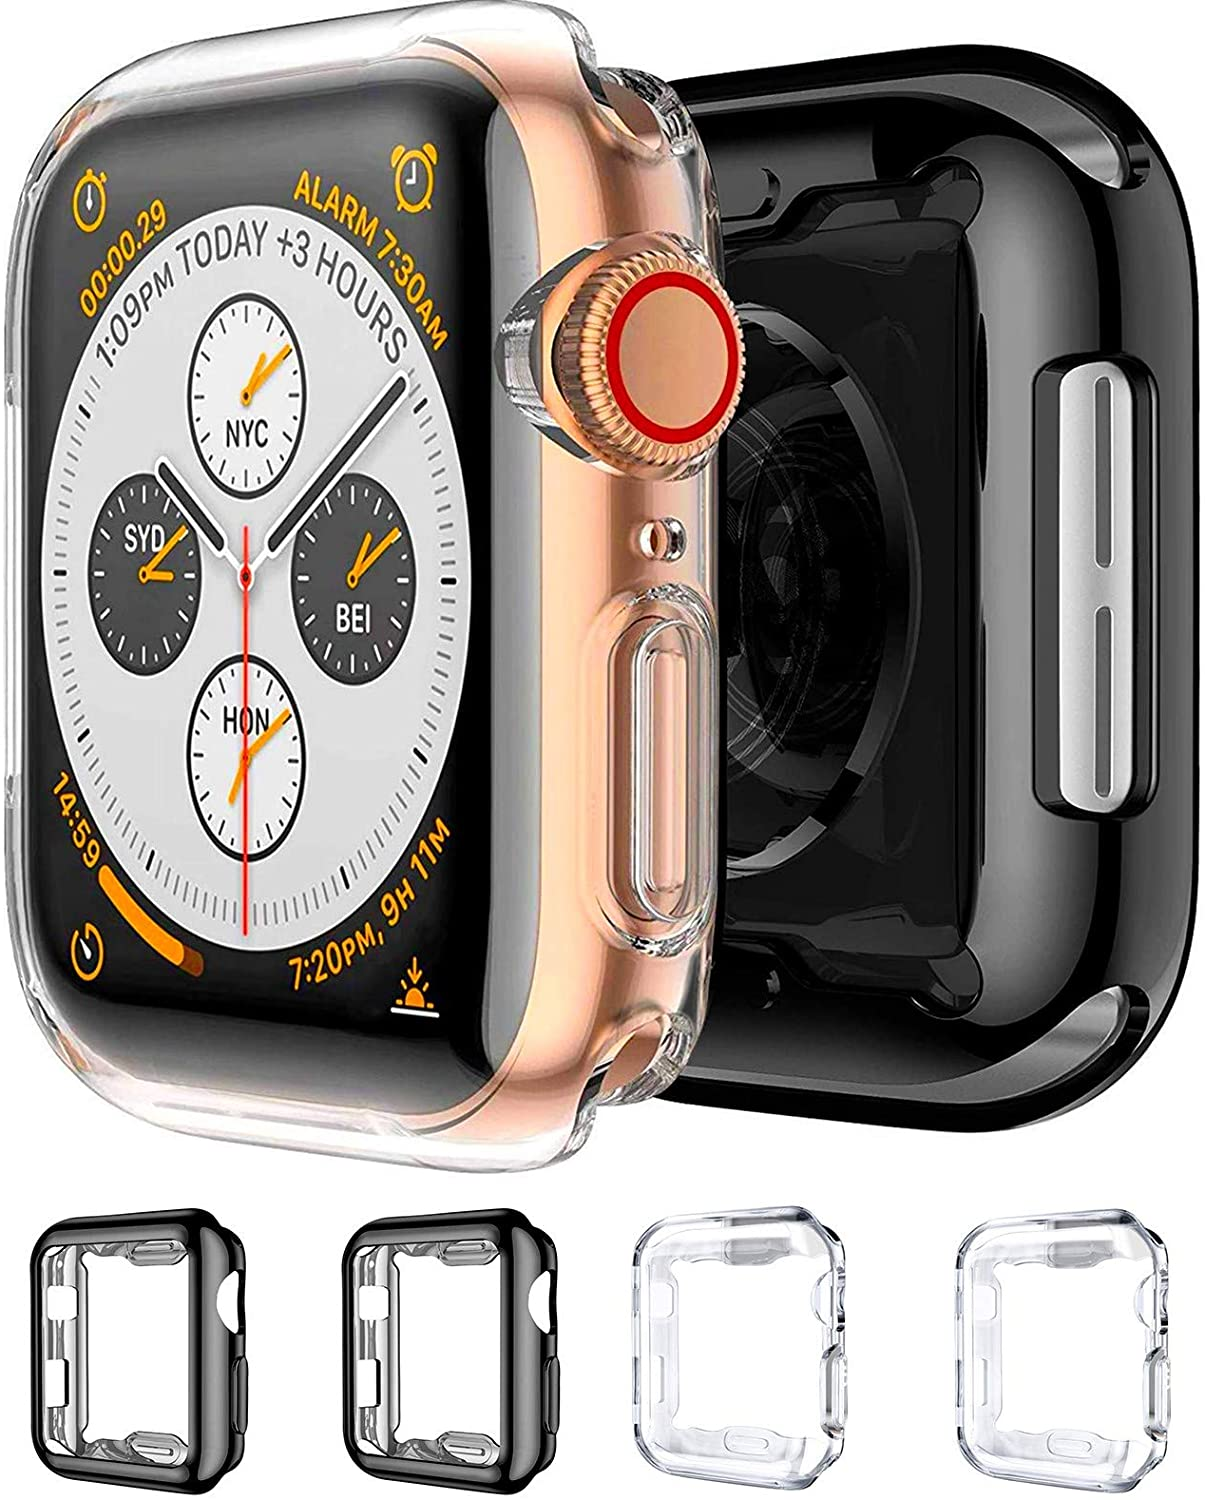 Mocodi 4-Pack Apple Watch Case 44mm with Built-in Clear Soft TPU Screen Protector Cover Bumper Shell Accessories for Apple Watch Series 4 & Series 5 & Series 6 and Apple Watch SE 44mm(Black +Clear)